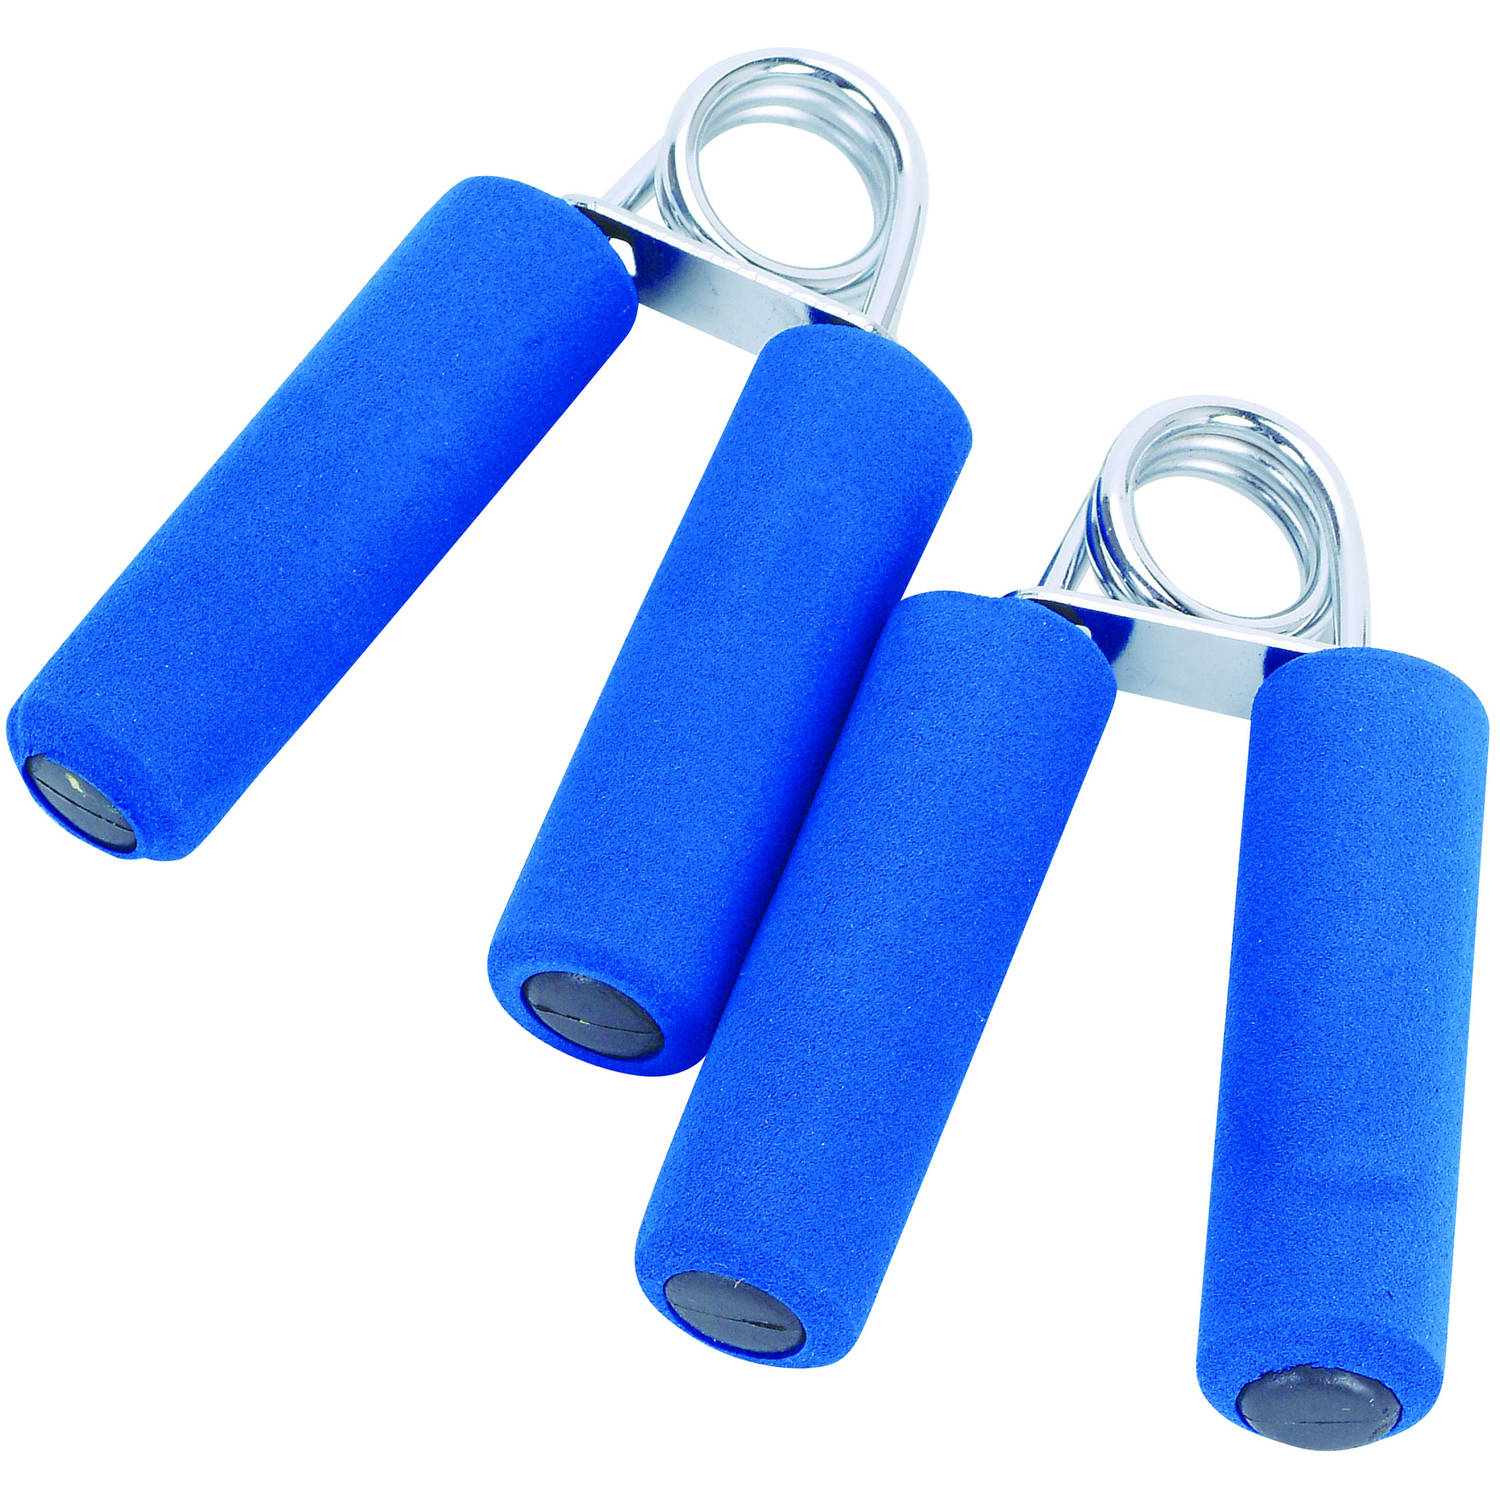 Sunny Health and Fitness Soft Hand Grip, Set of 2